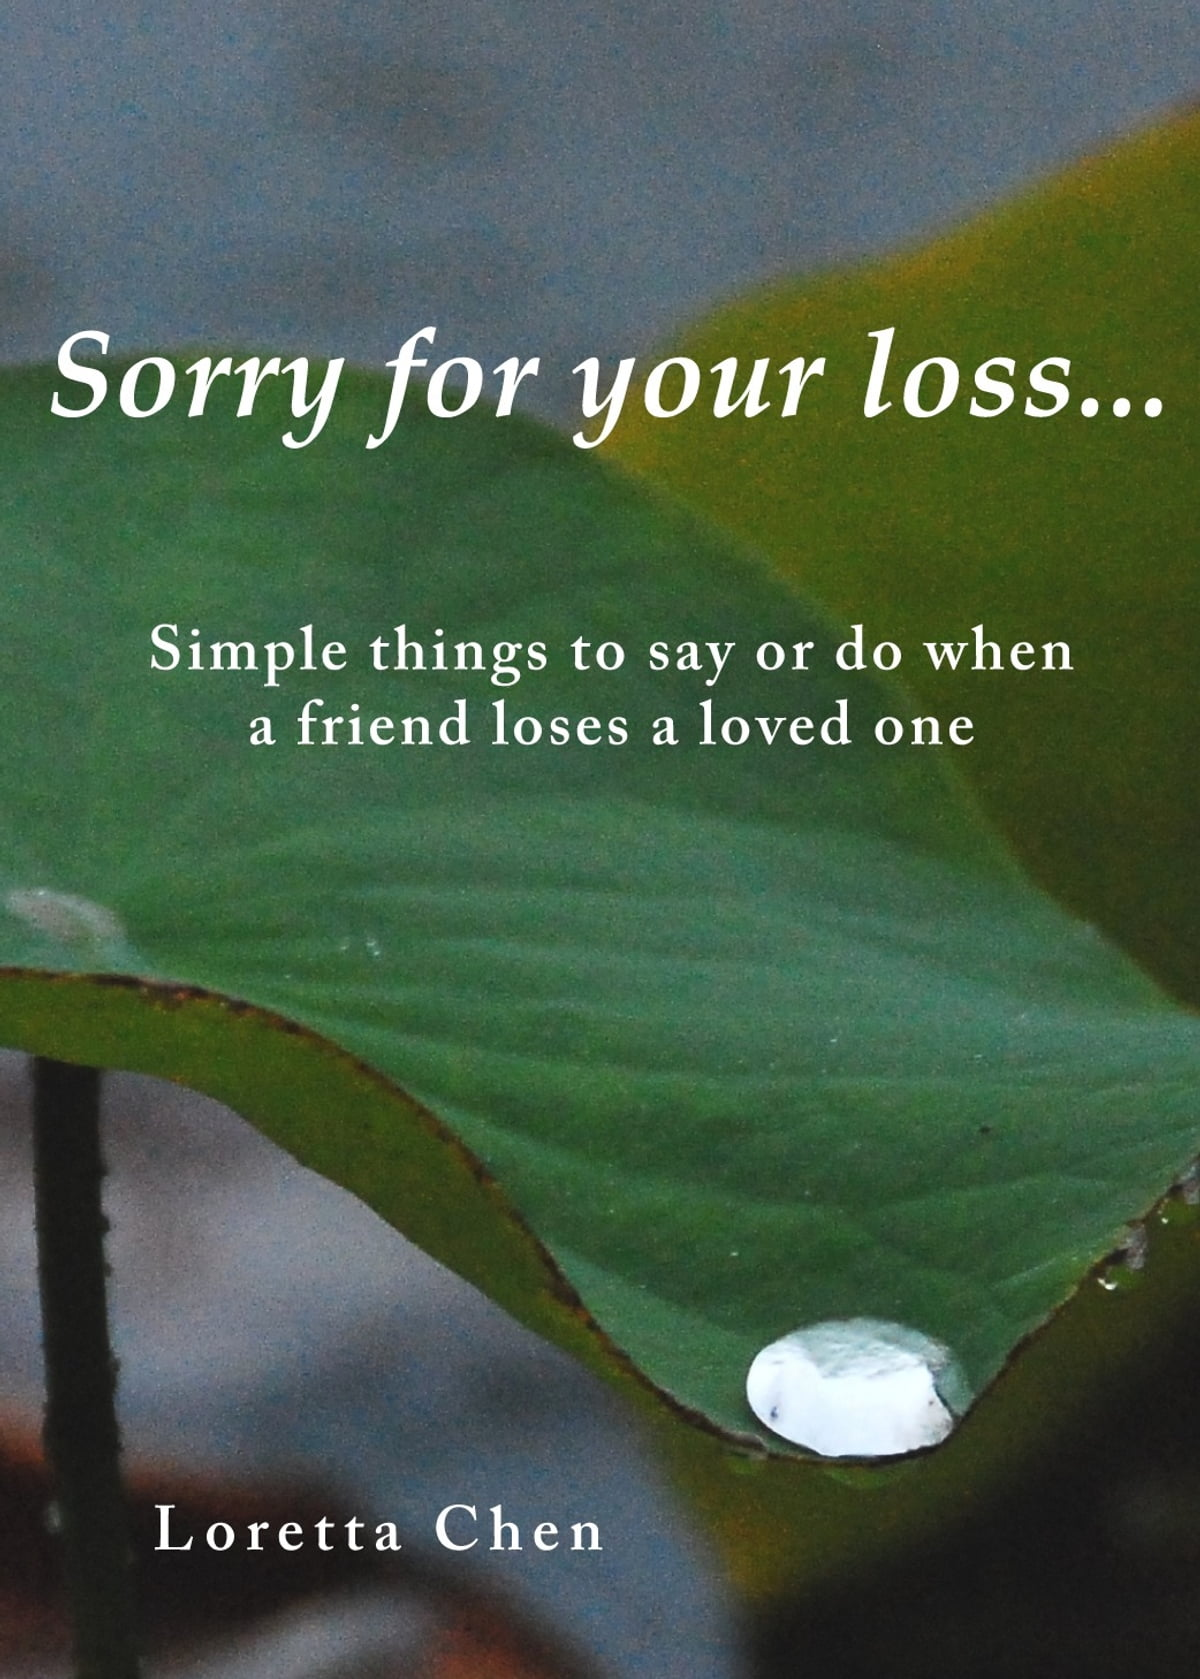 Sorry For Your Loss Simple Things To Say Or Do When A Friend Loses A Loved One Ebook By Loretta Chen Rakuten Kobo